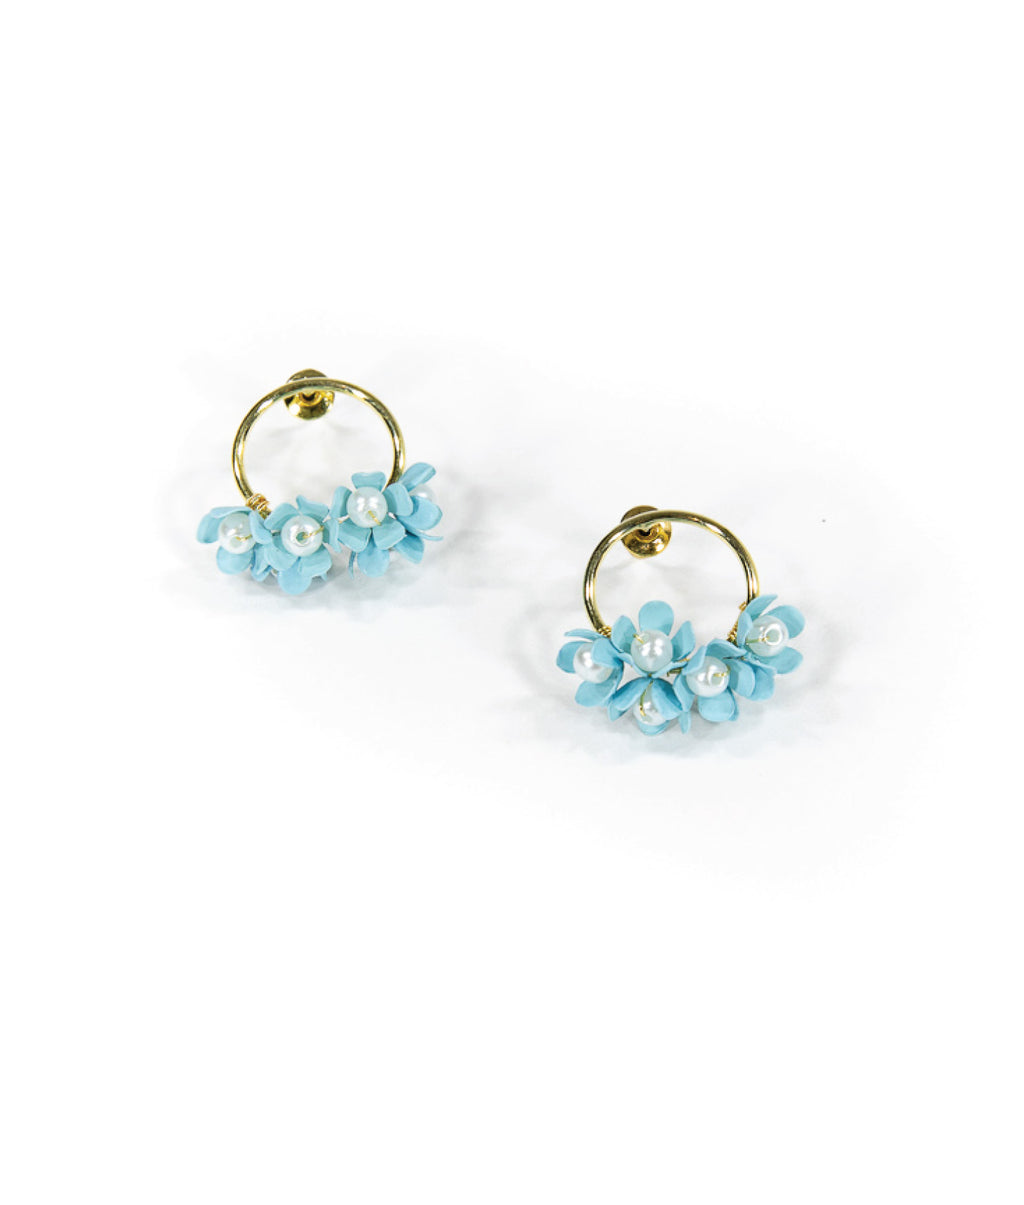 EARRINGS - Aqua Bouquet